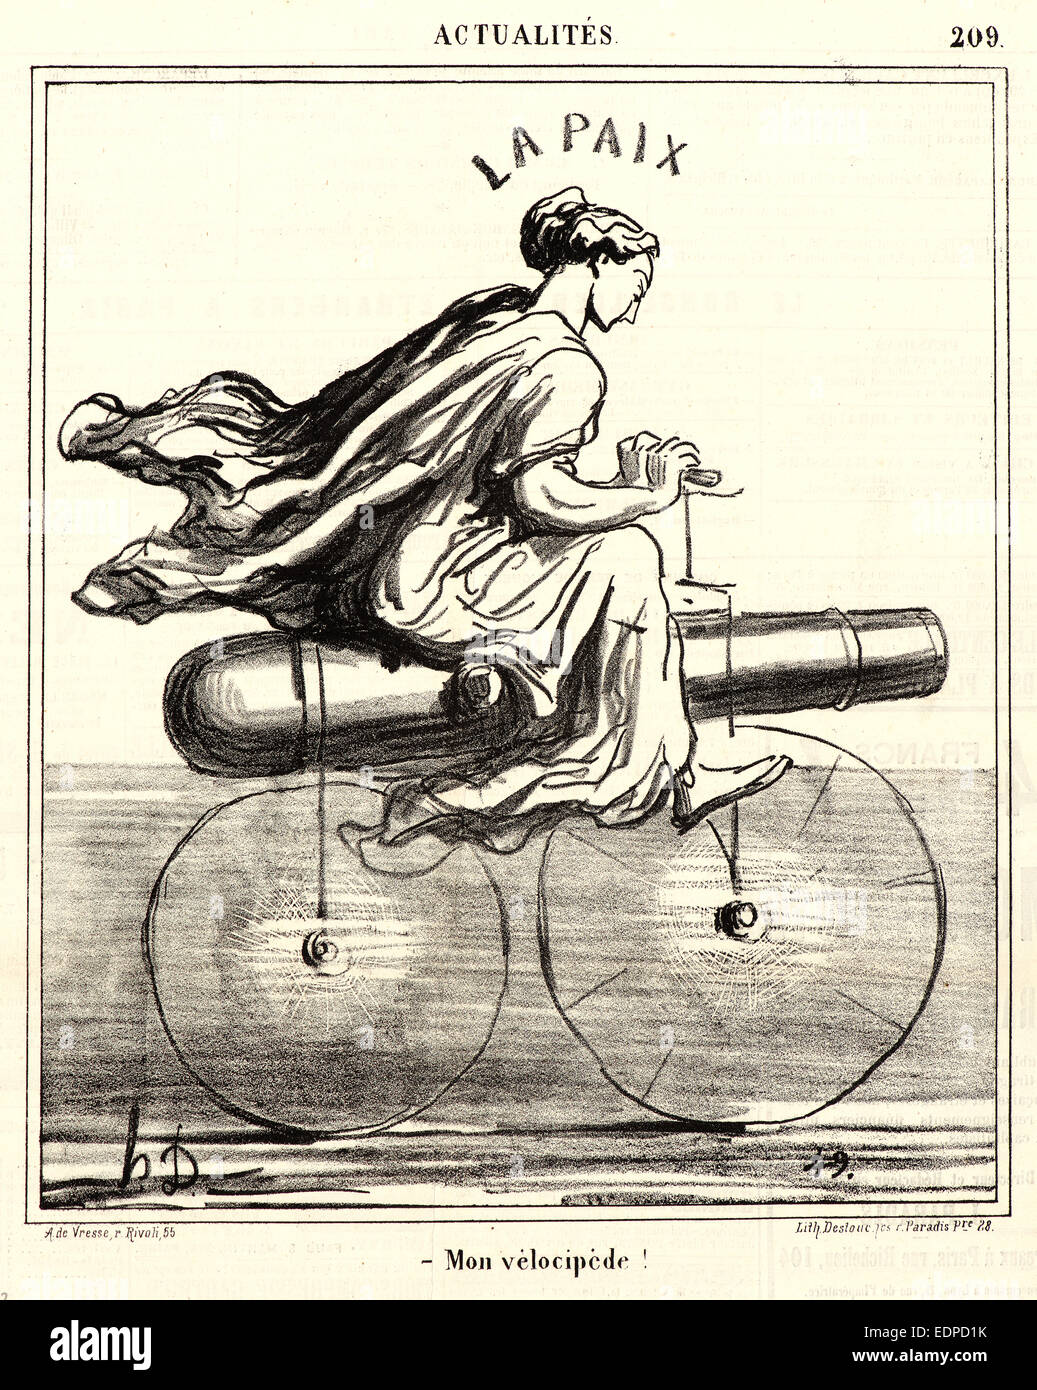 Honoré Daumier (French, 1808 - 1879). Mon velocipède!, 1868. From Actualités. Lithograph on newsprint - Stock Image